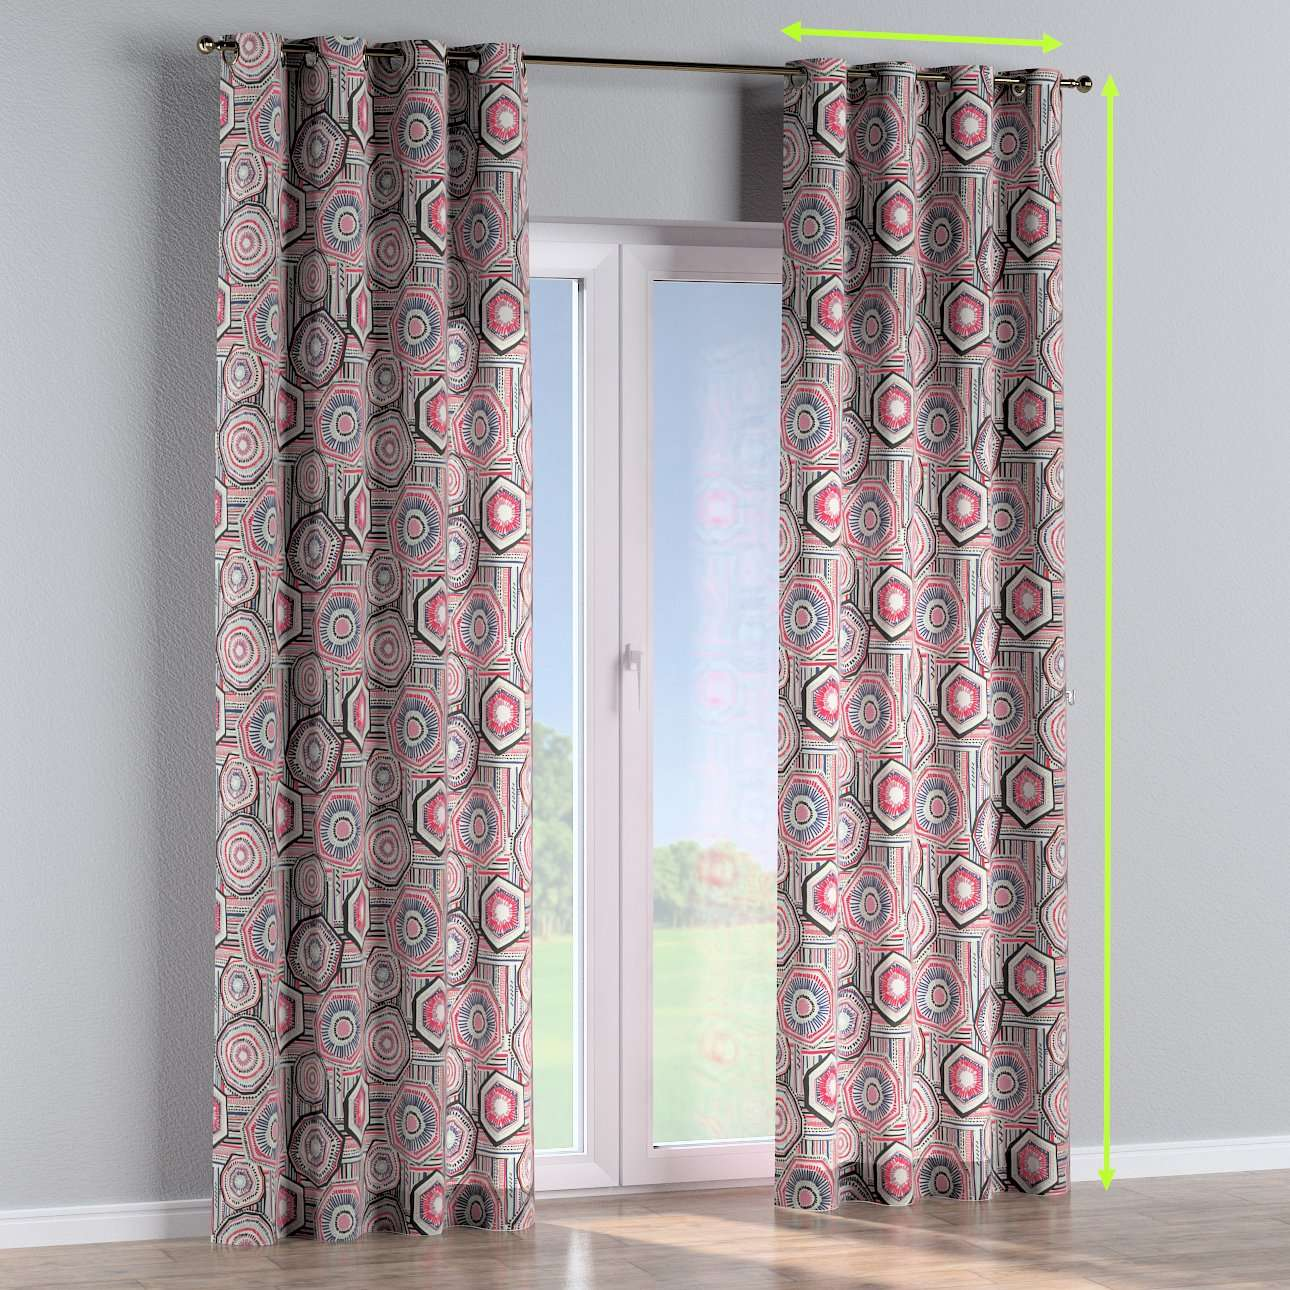 Eyelet lined curtains in collection New Art, fabric: 141-54